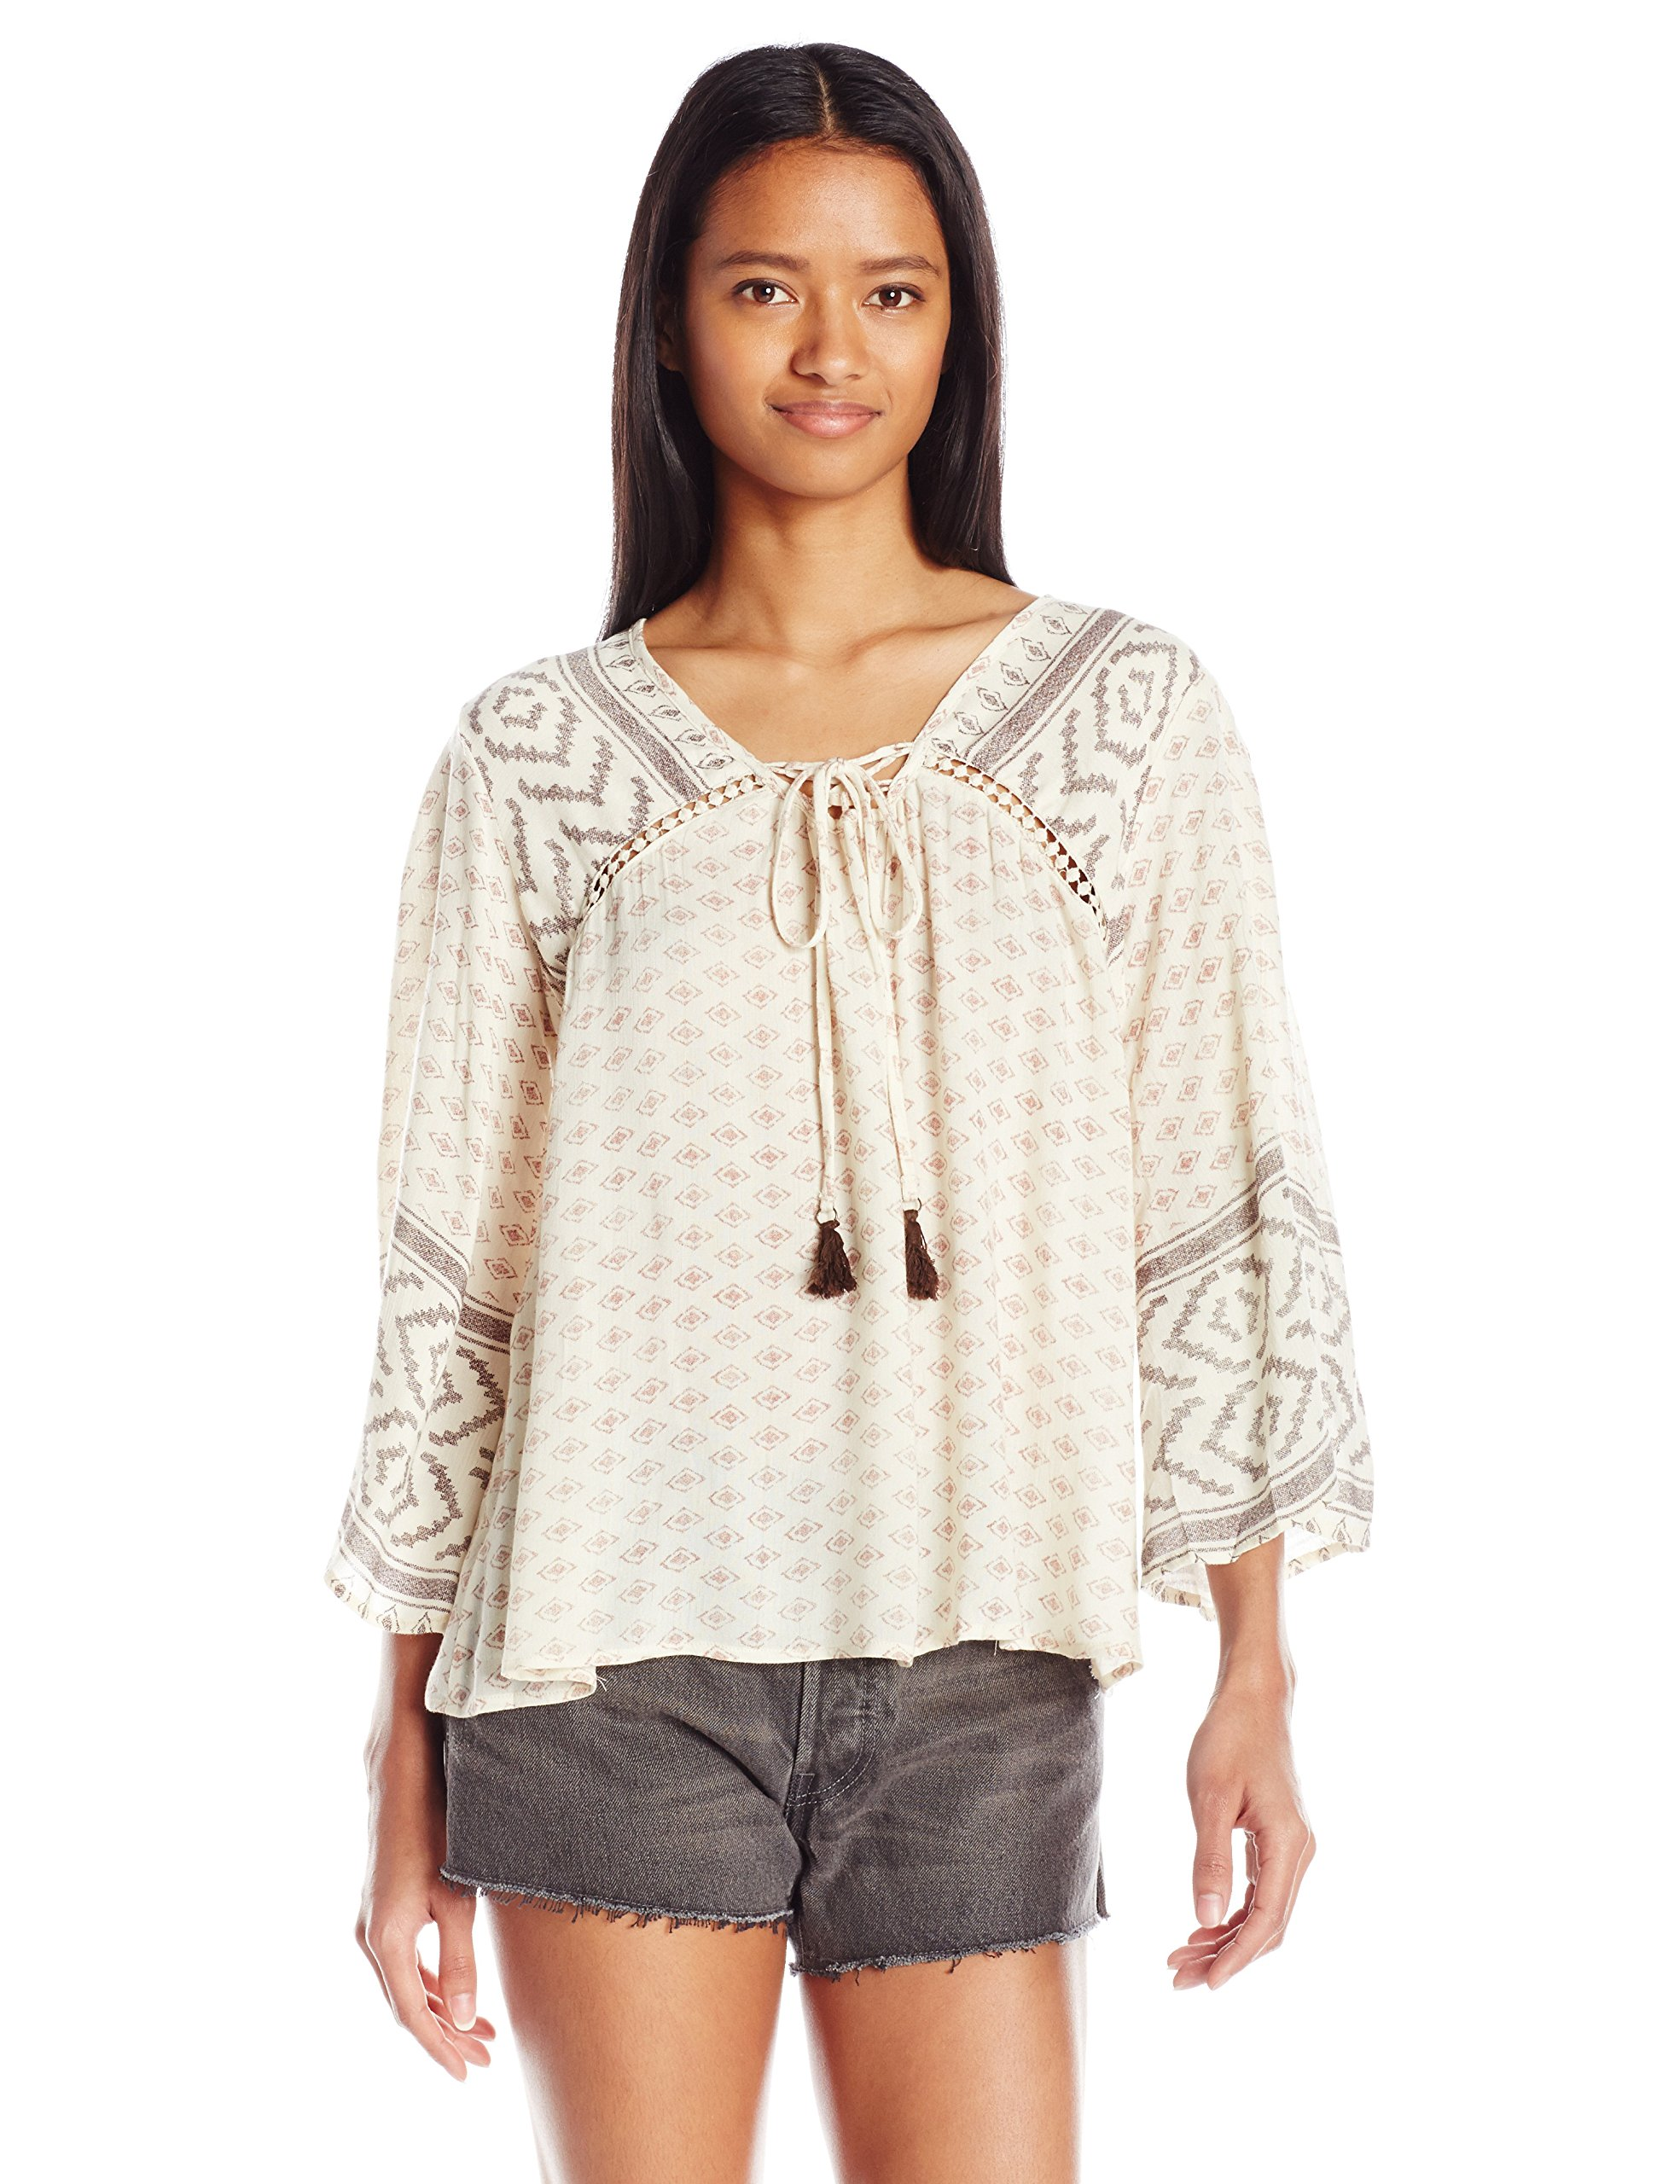 Angie Women's Bell Sleeve Top, Ivory, Small